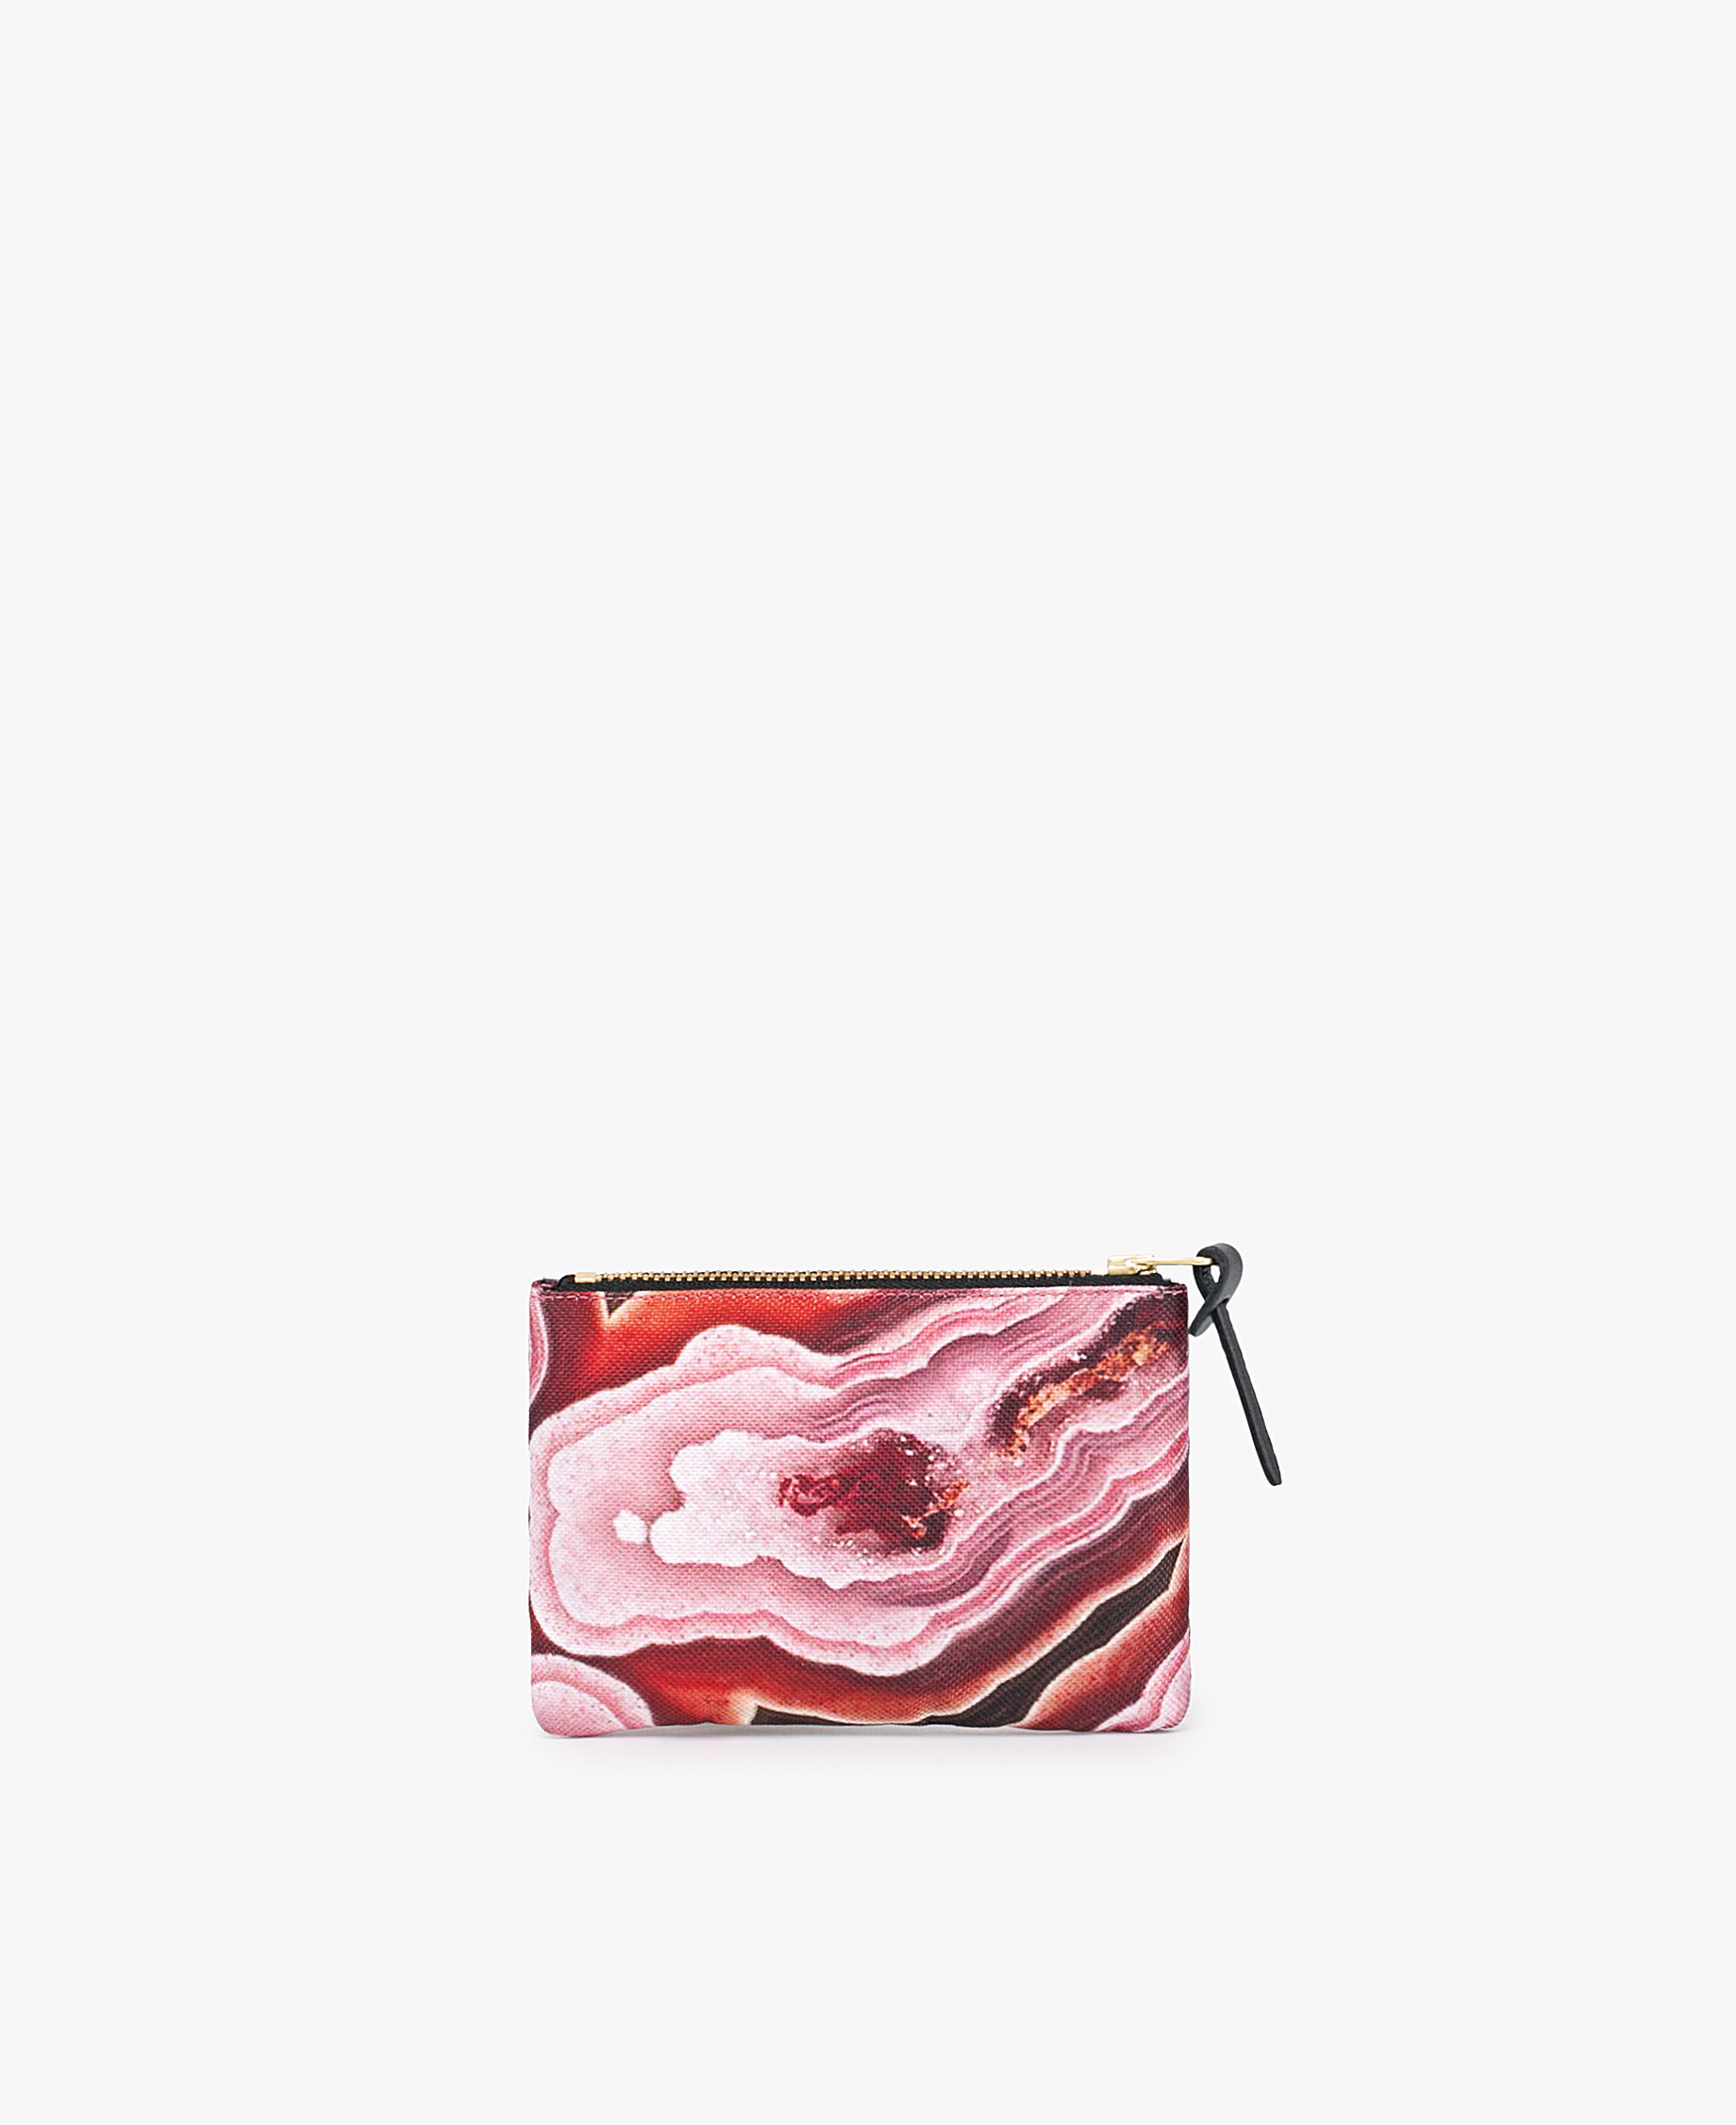 pink pouch bag for ladies